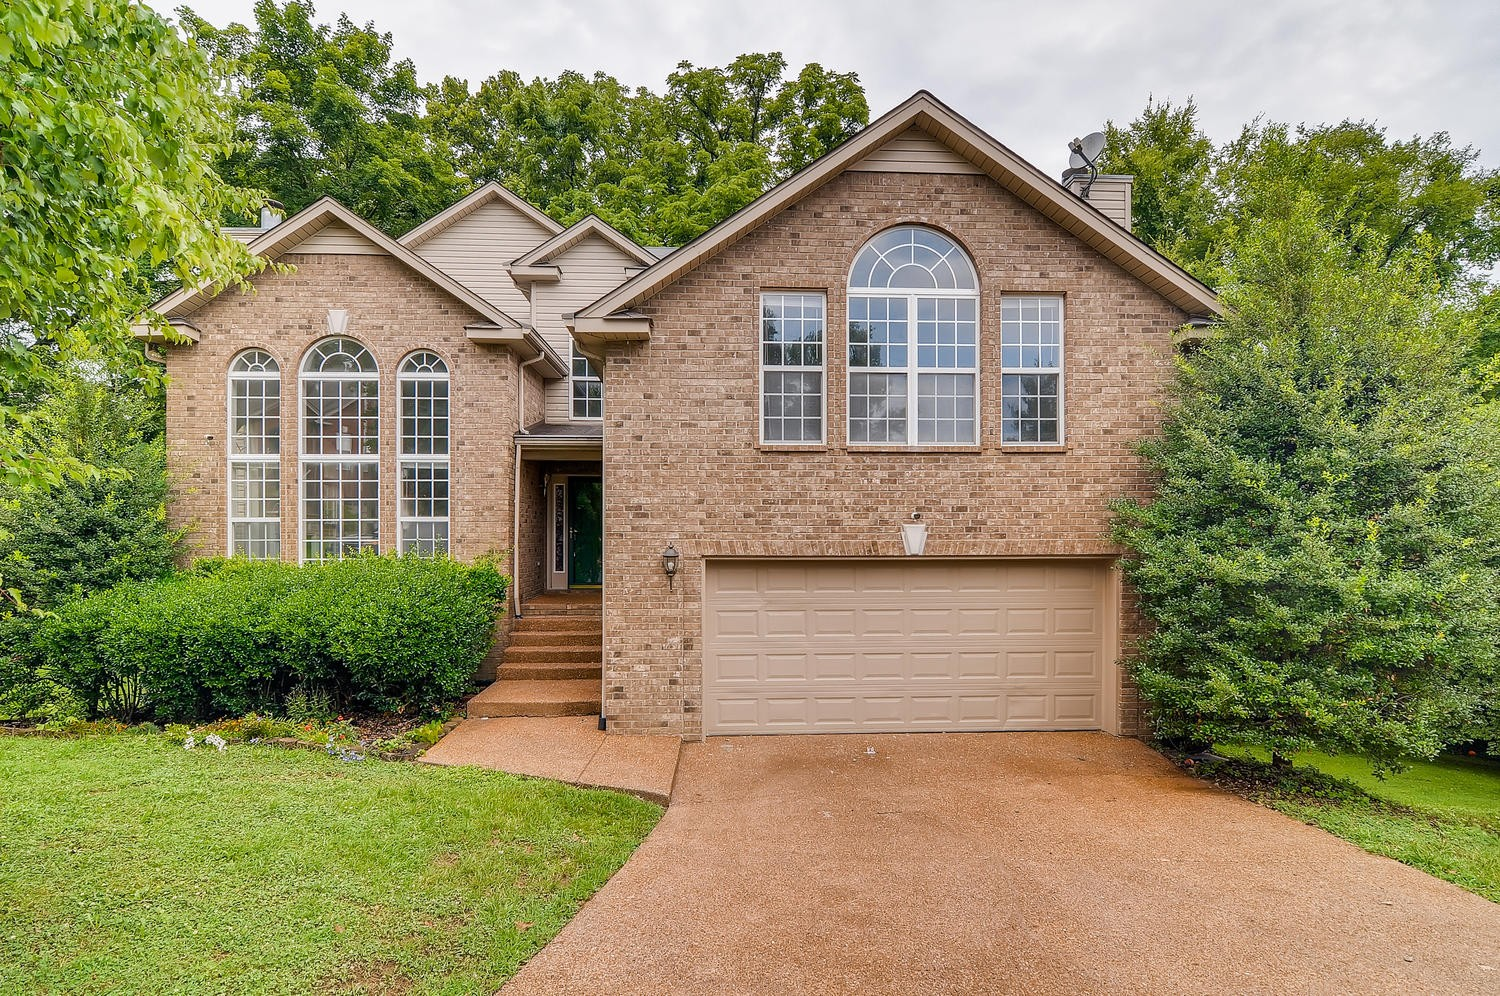 628 Copper Ridge Trl Property Photo - Antioch, TN real estate listing